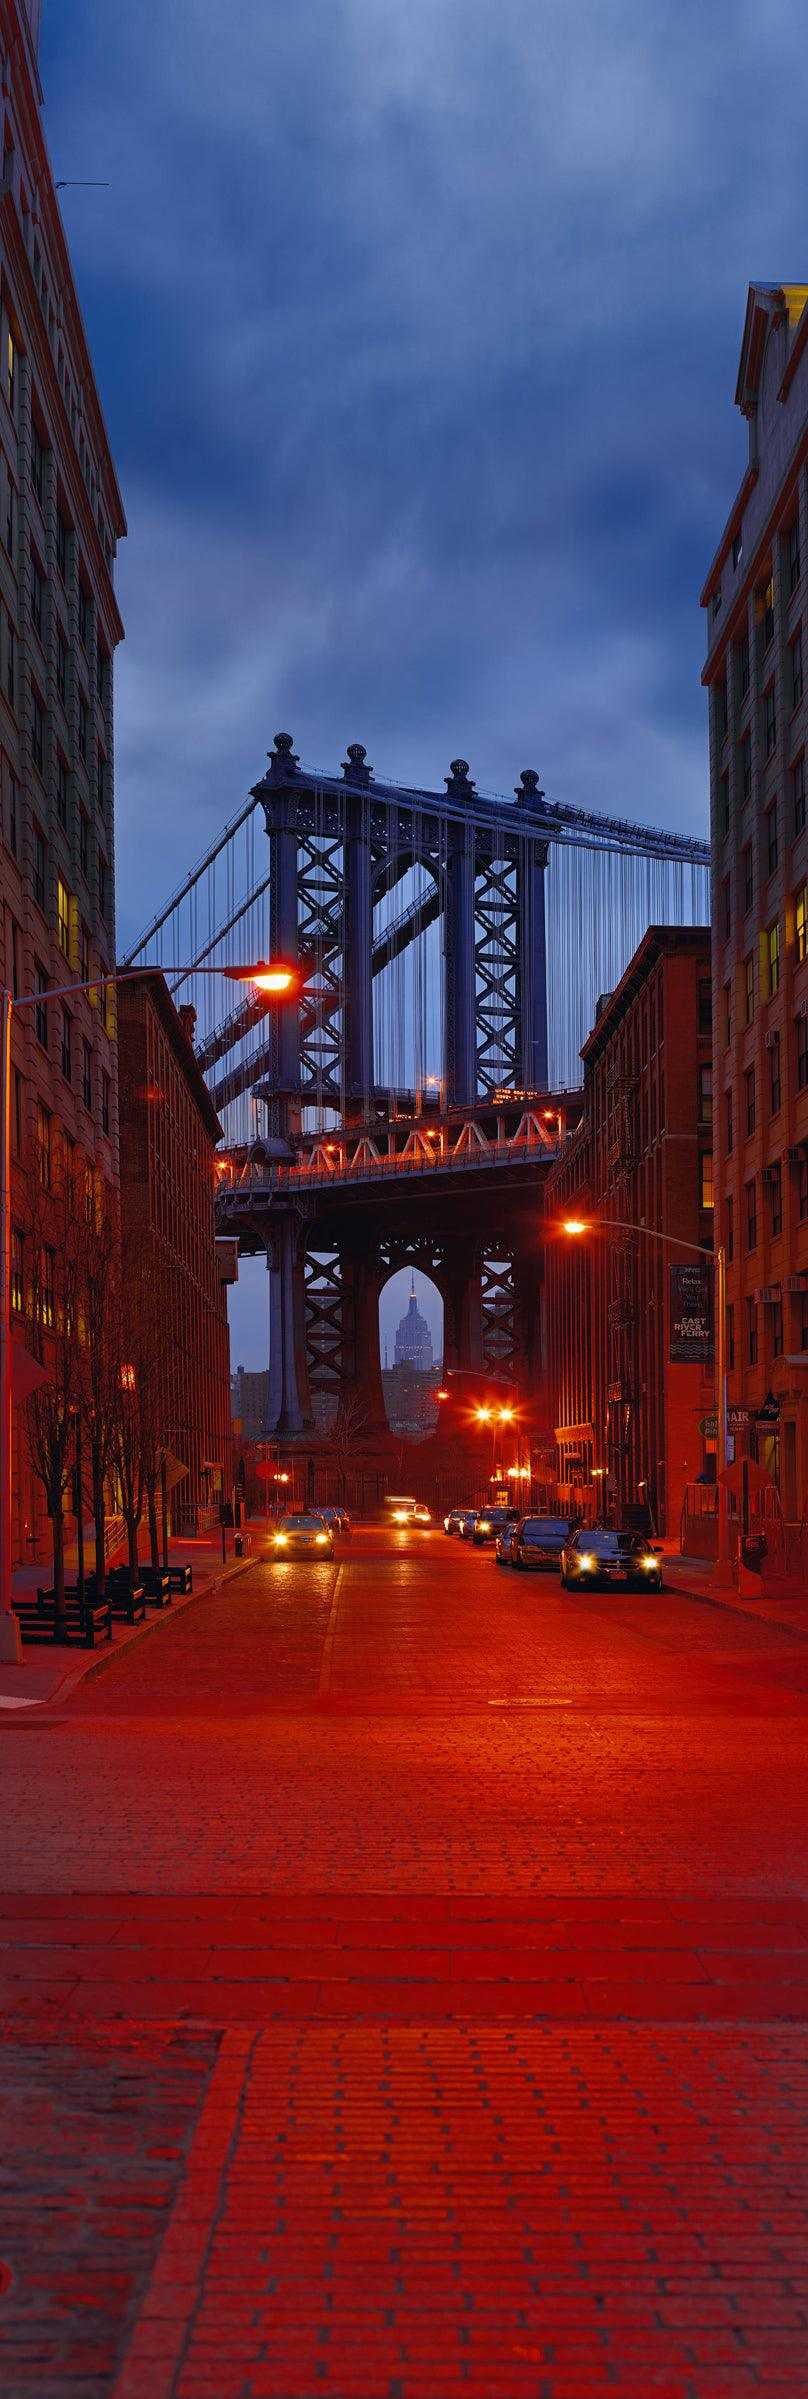 New York City street full of cars at night leading to the Manhattan Bridge